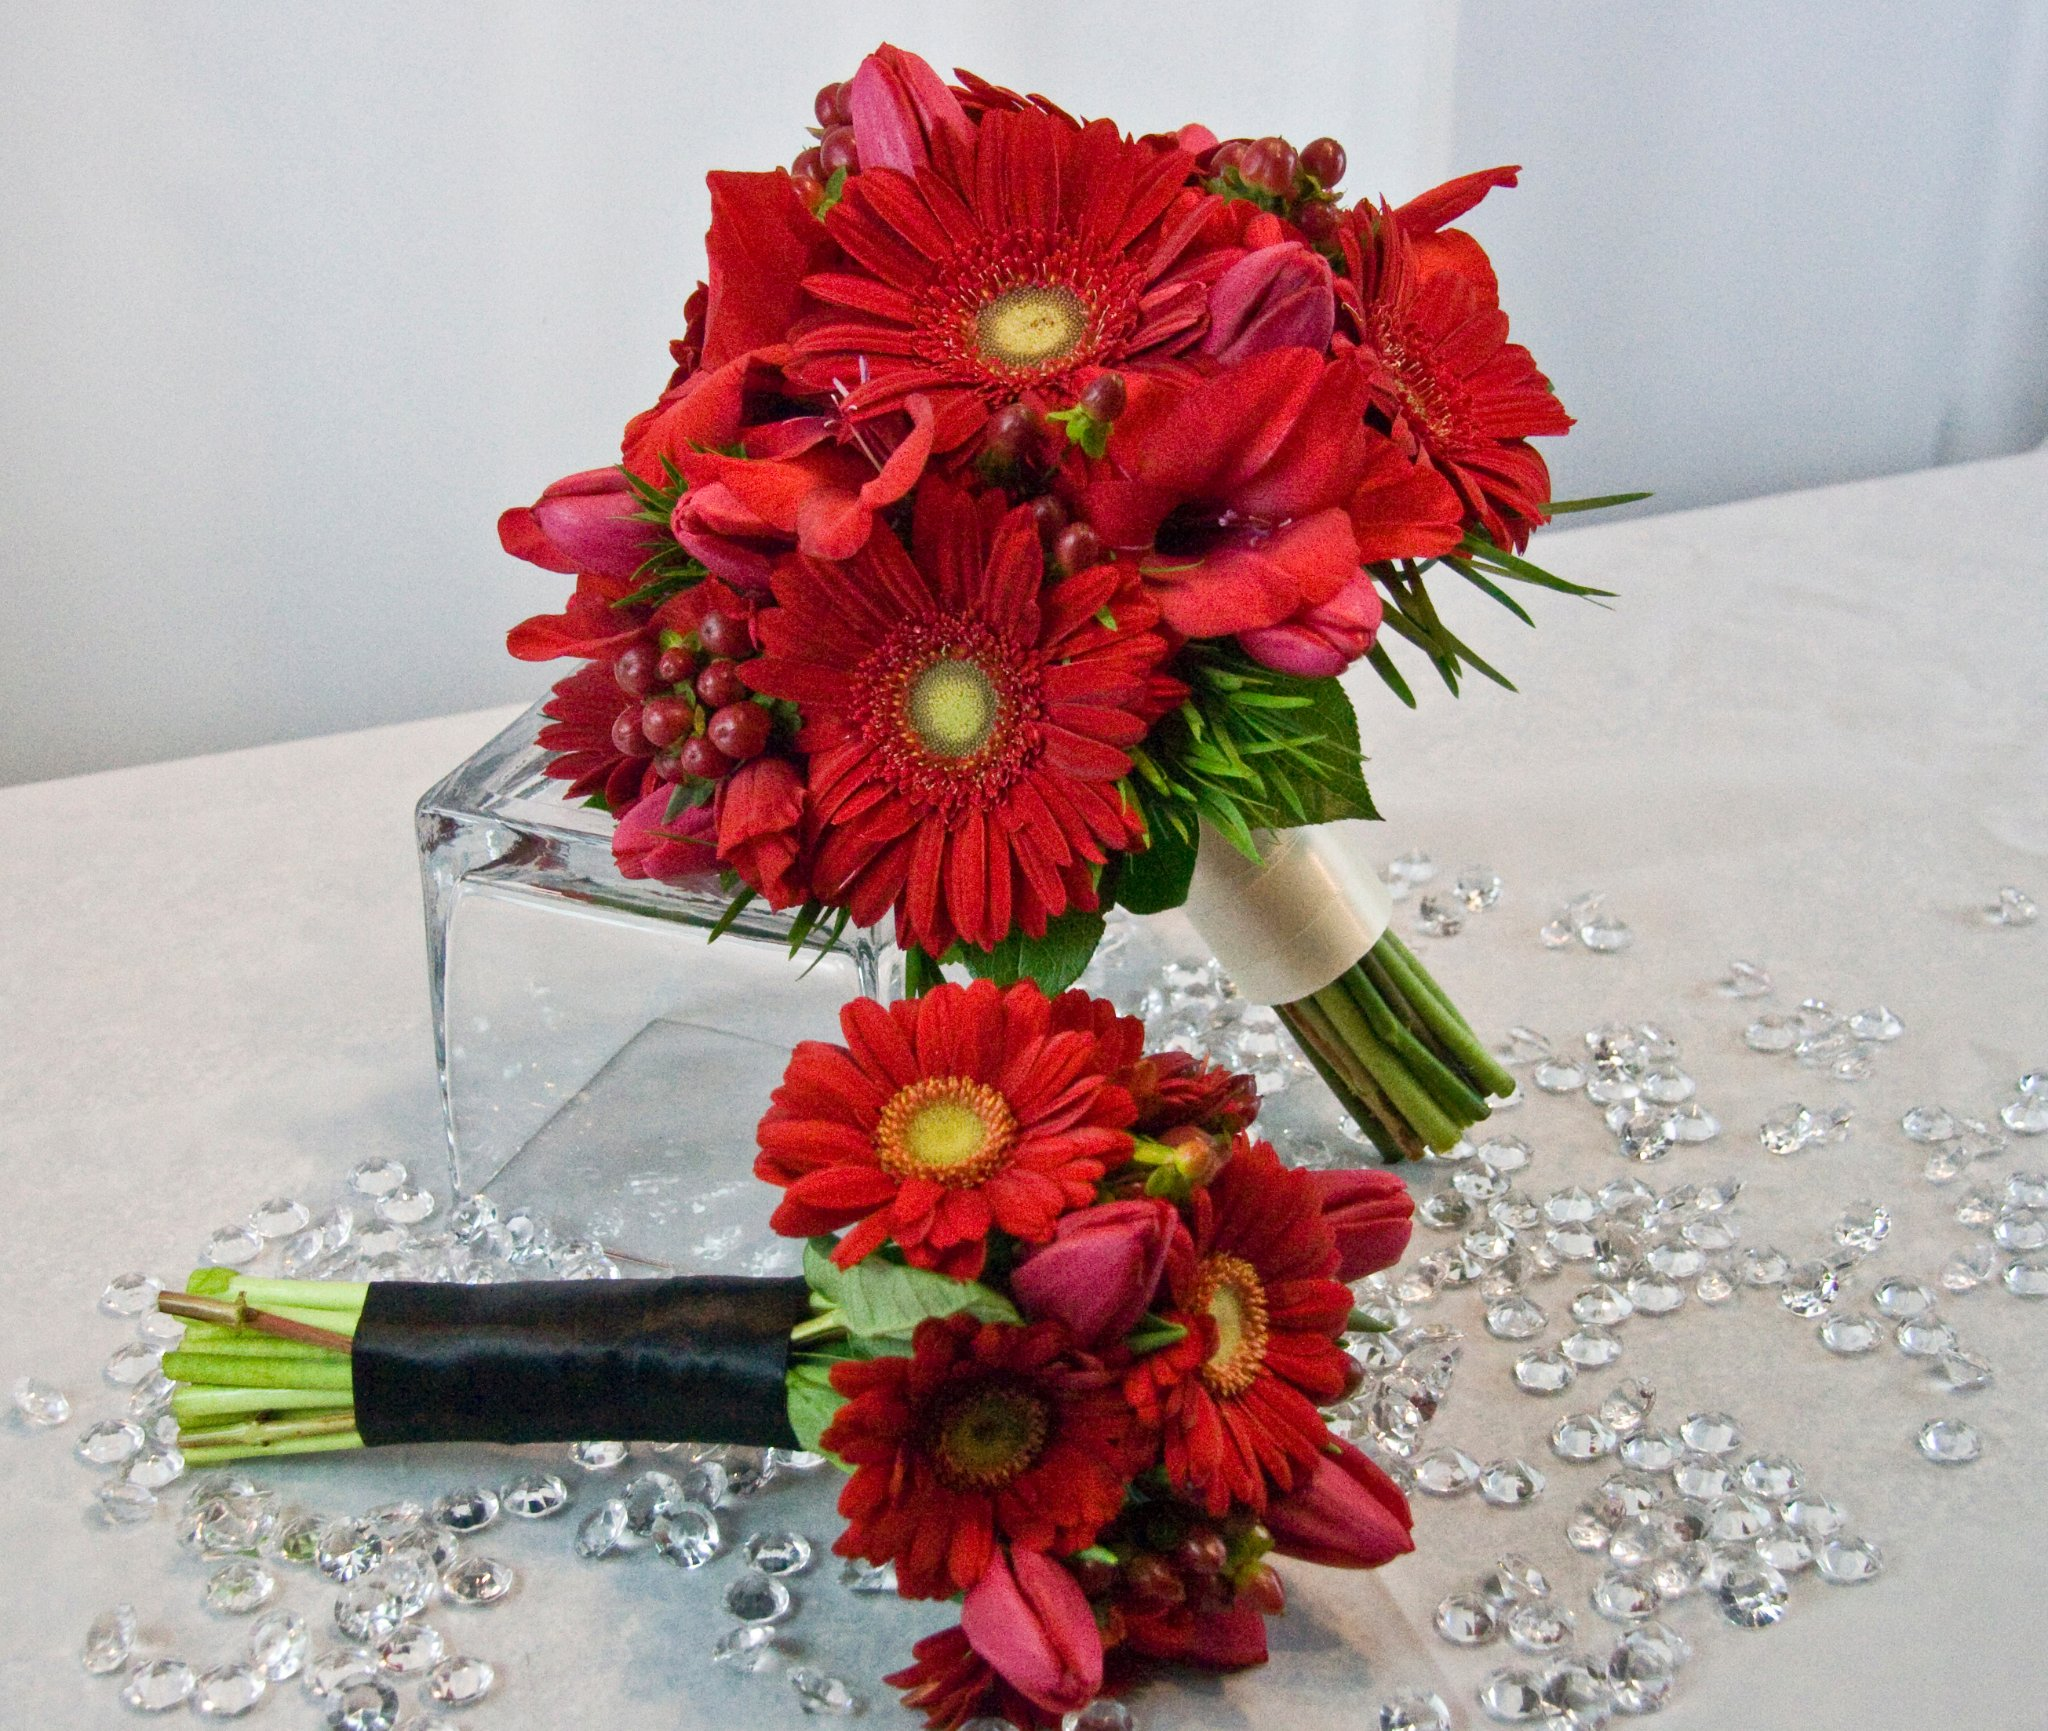 red gerbera daisy wedding bouquets photo - 1